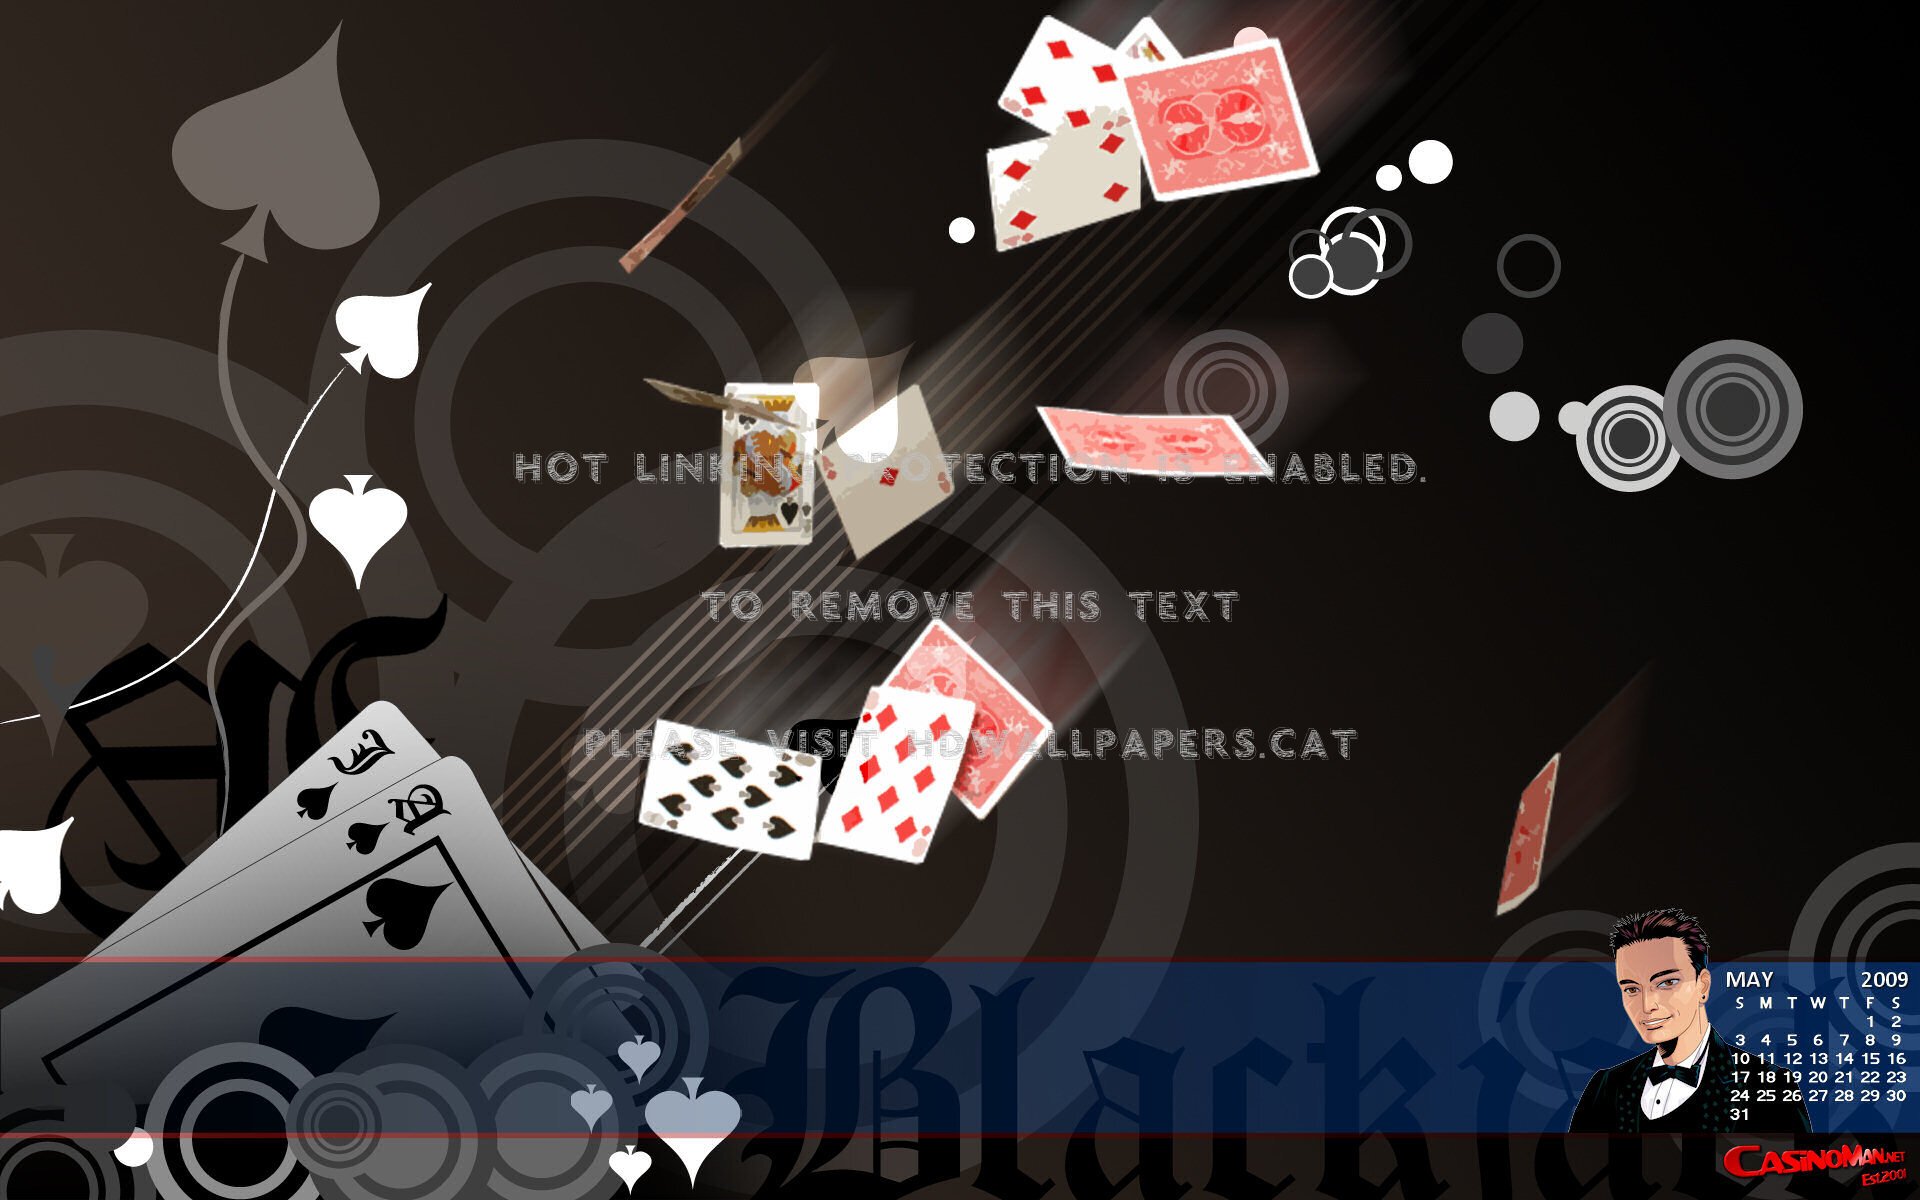 It Is The Aspect Of Excessive Gambling Not Often Seen